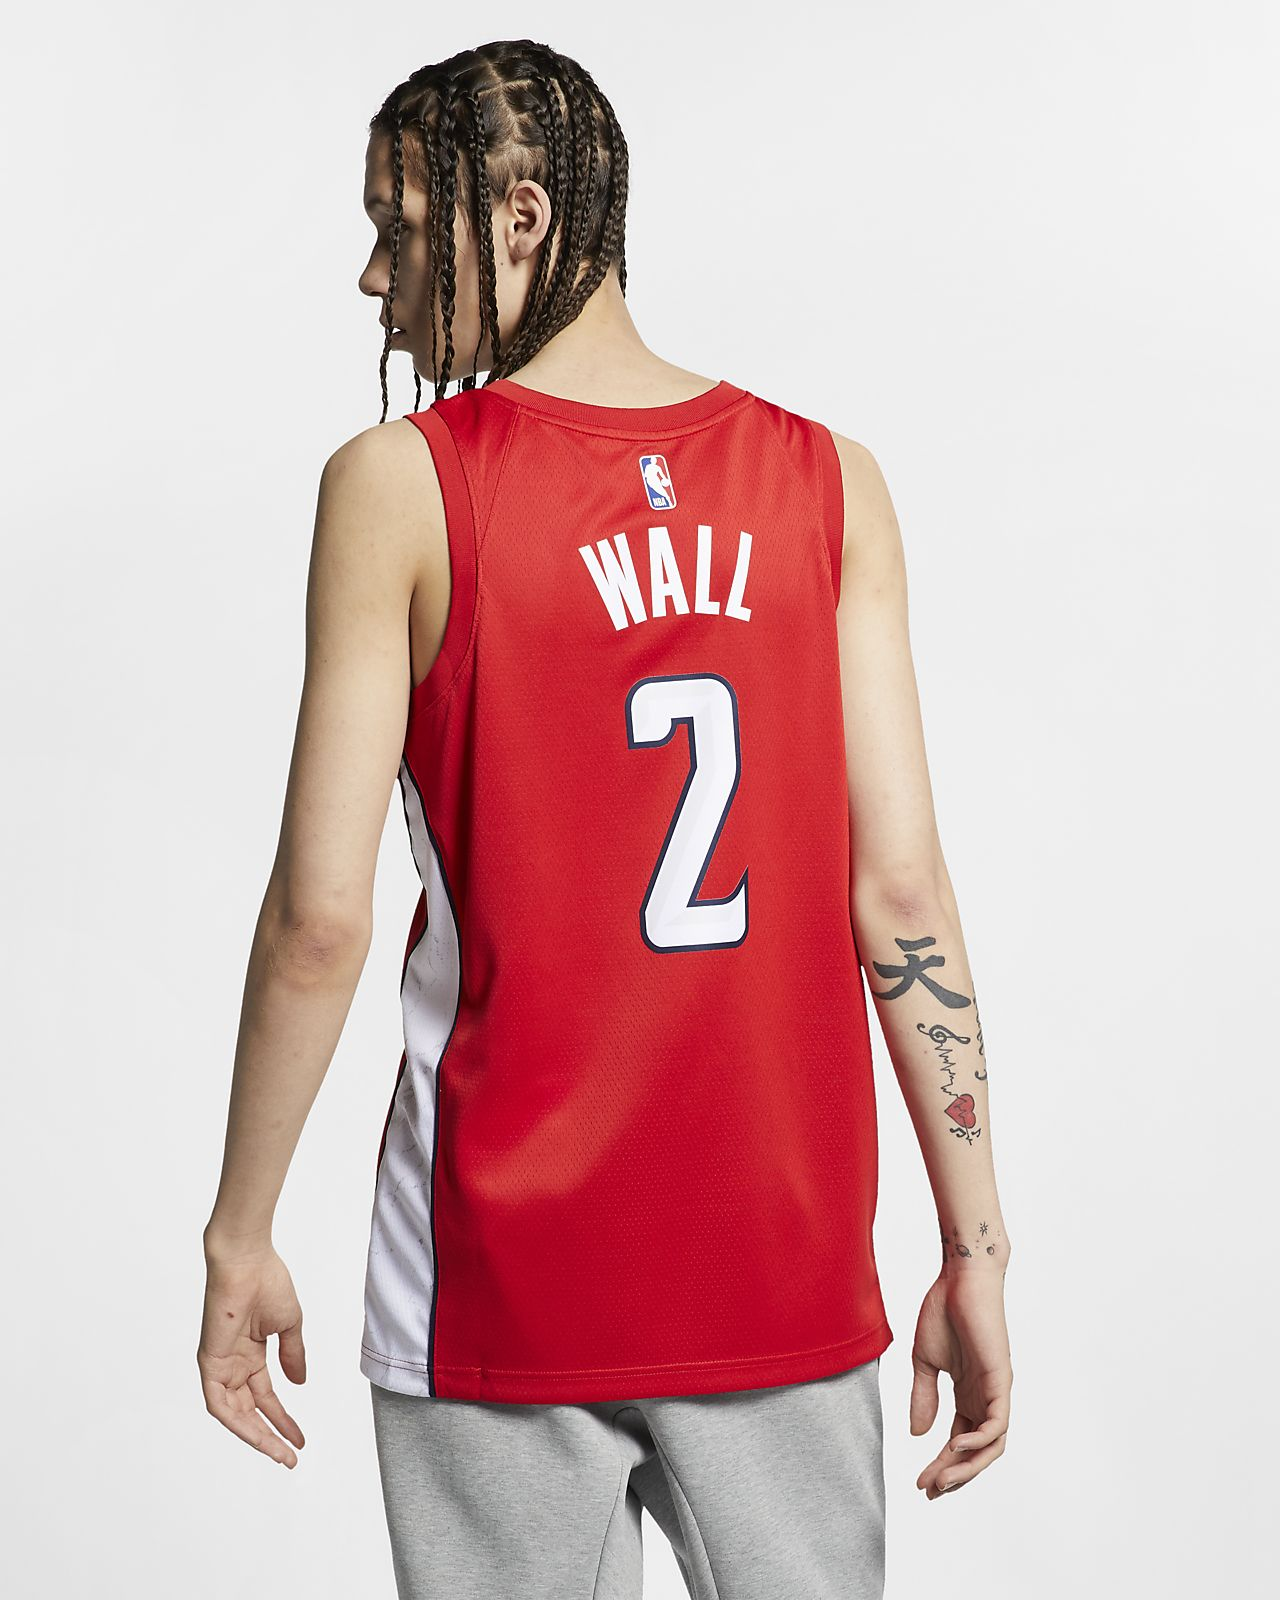 b369c43a432 ... John Wall Earned City Edition Swingman (Washington Wizards) Men s Nike  NBA Connected Jersey